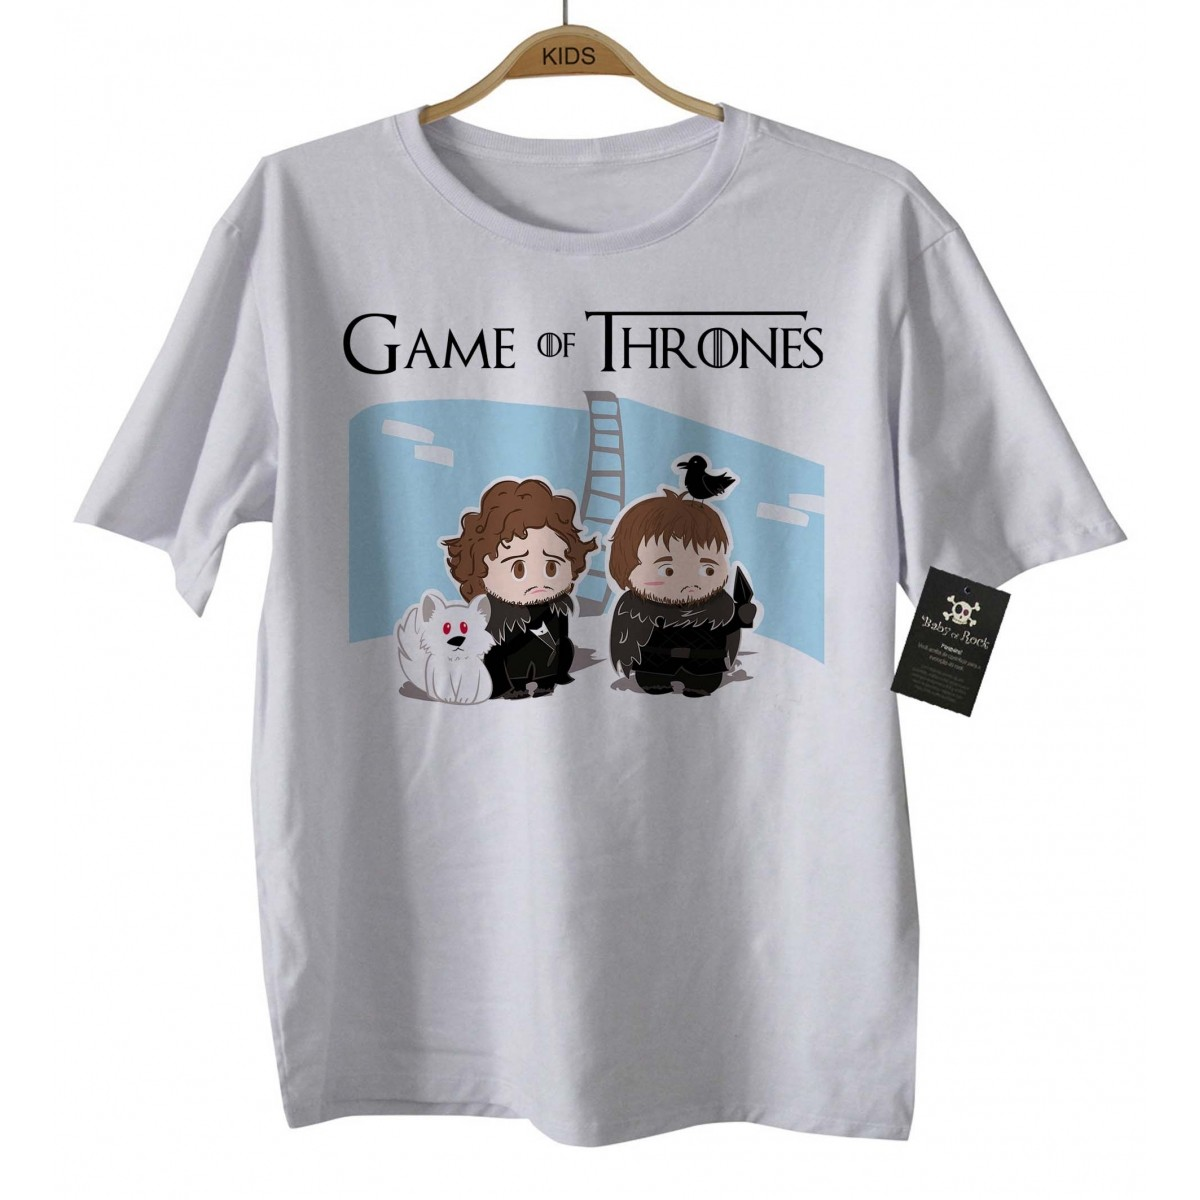 Camiseta de Filme - Infantil - Game of Thrones - White  - Baby Monster - Body Bebe